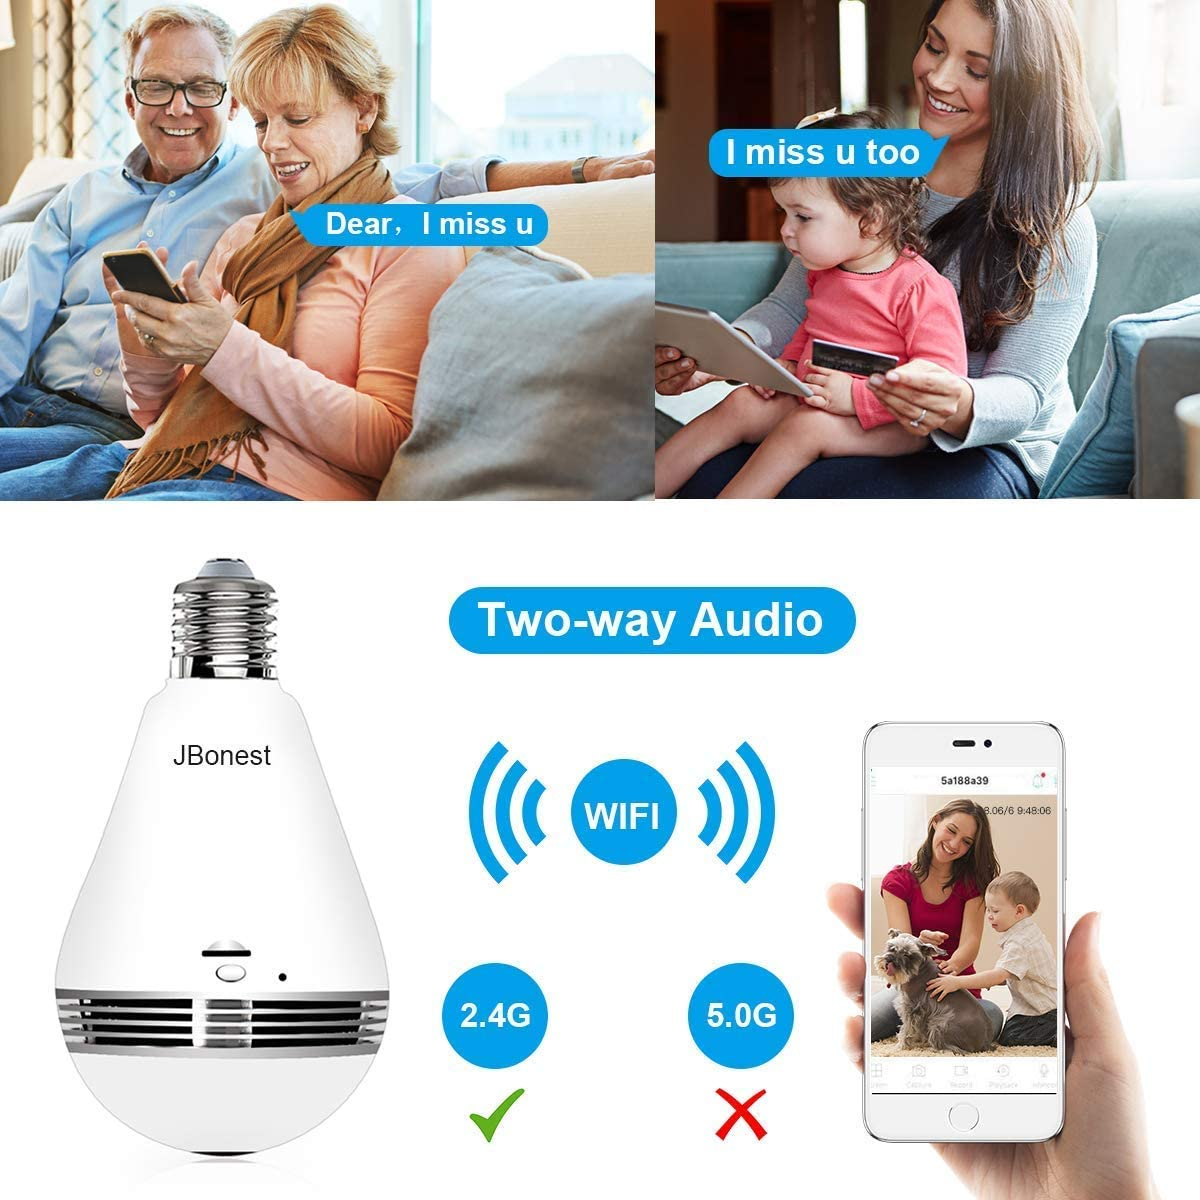 JBonest 1080P Light Bulb Camera with Real Time Audio, IR Motion Detection, Night Vision, Panoramic View, Cloud Service for Home, Office